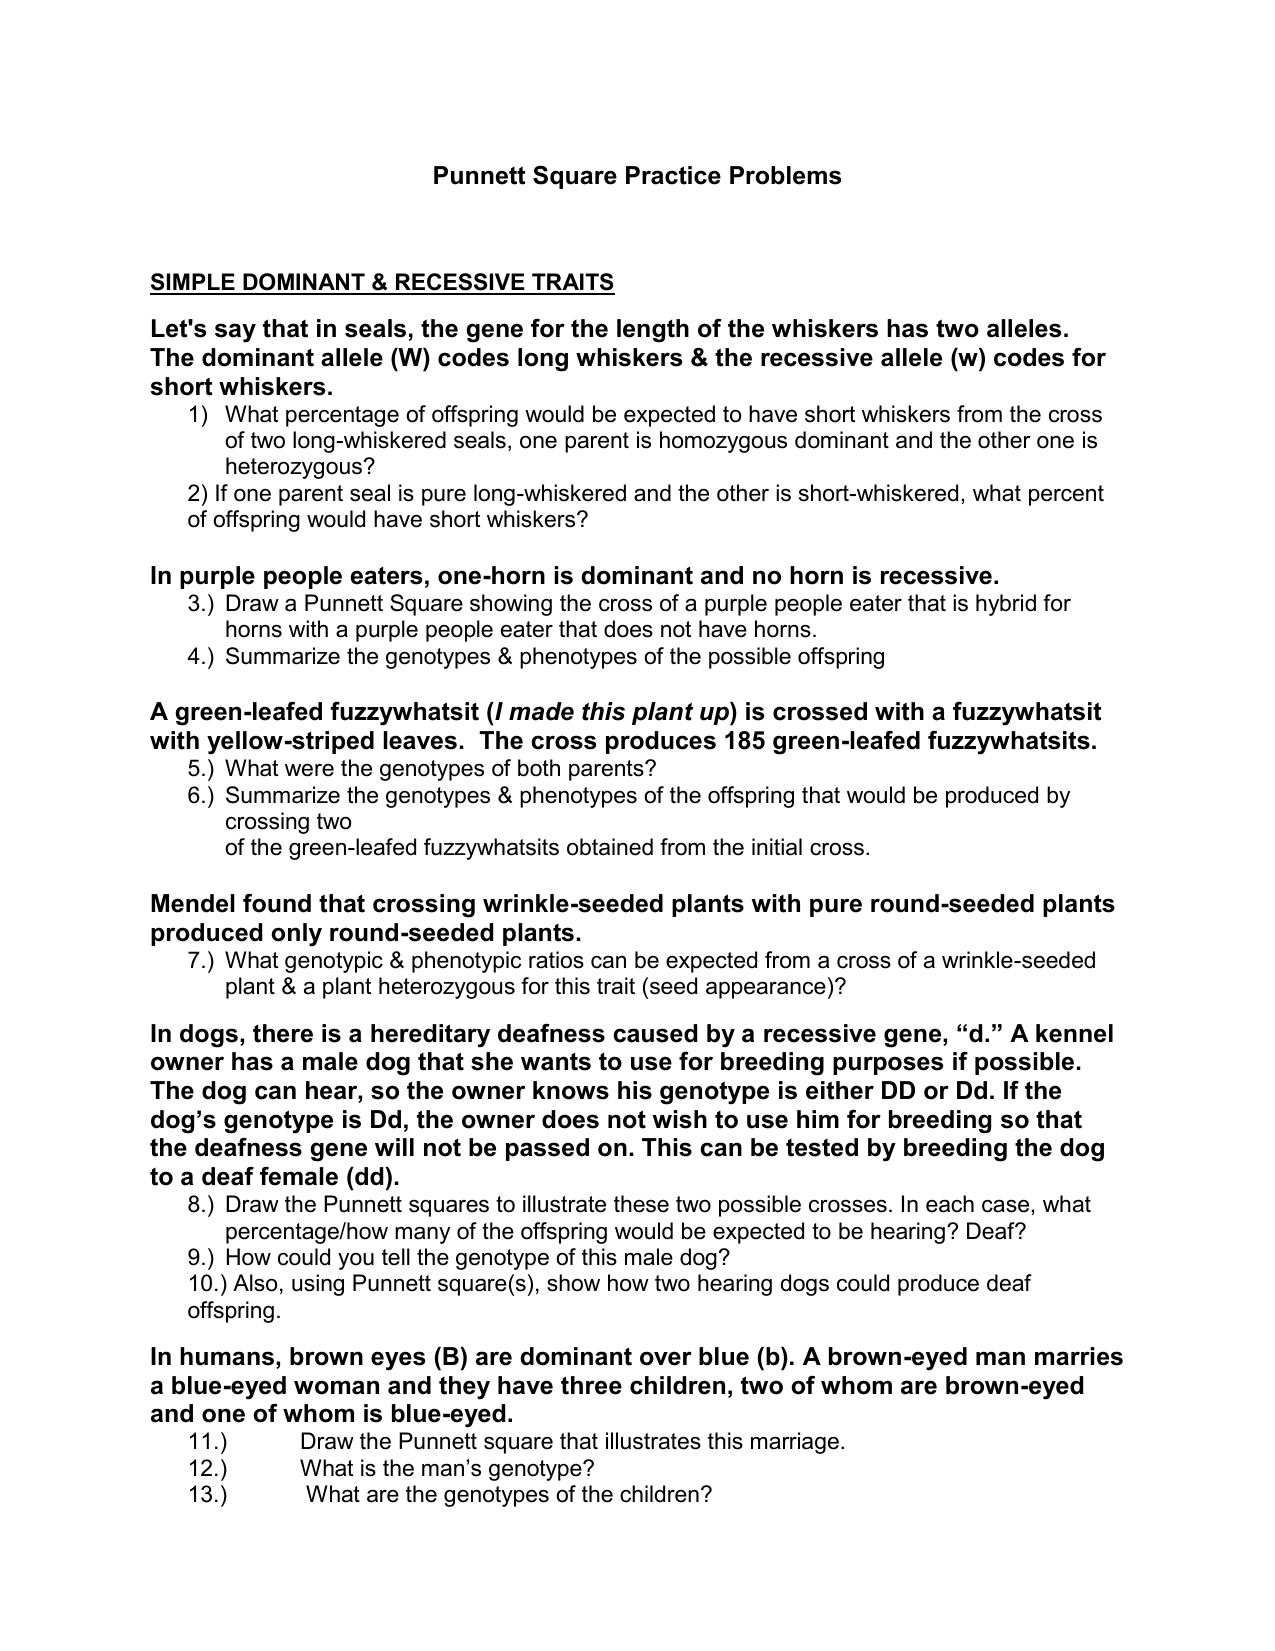 Worksheets Punnett Square Practice Worksheet With Answers 009908183 1 0be3c999a9601d5d3ebc826403d6c54e png